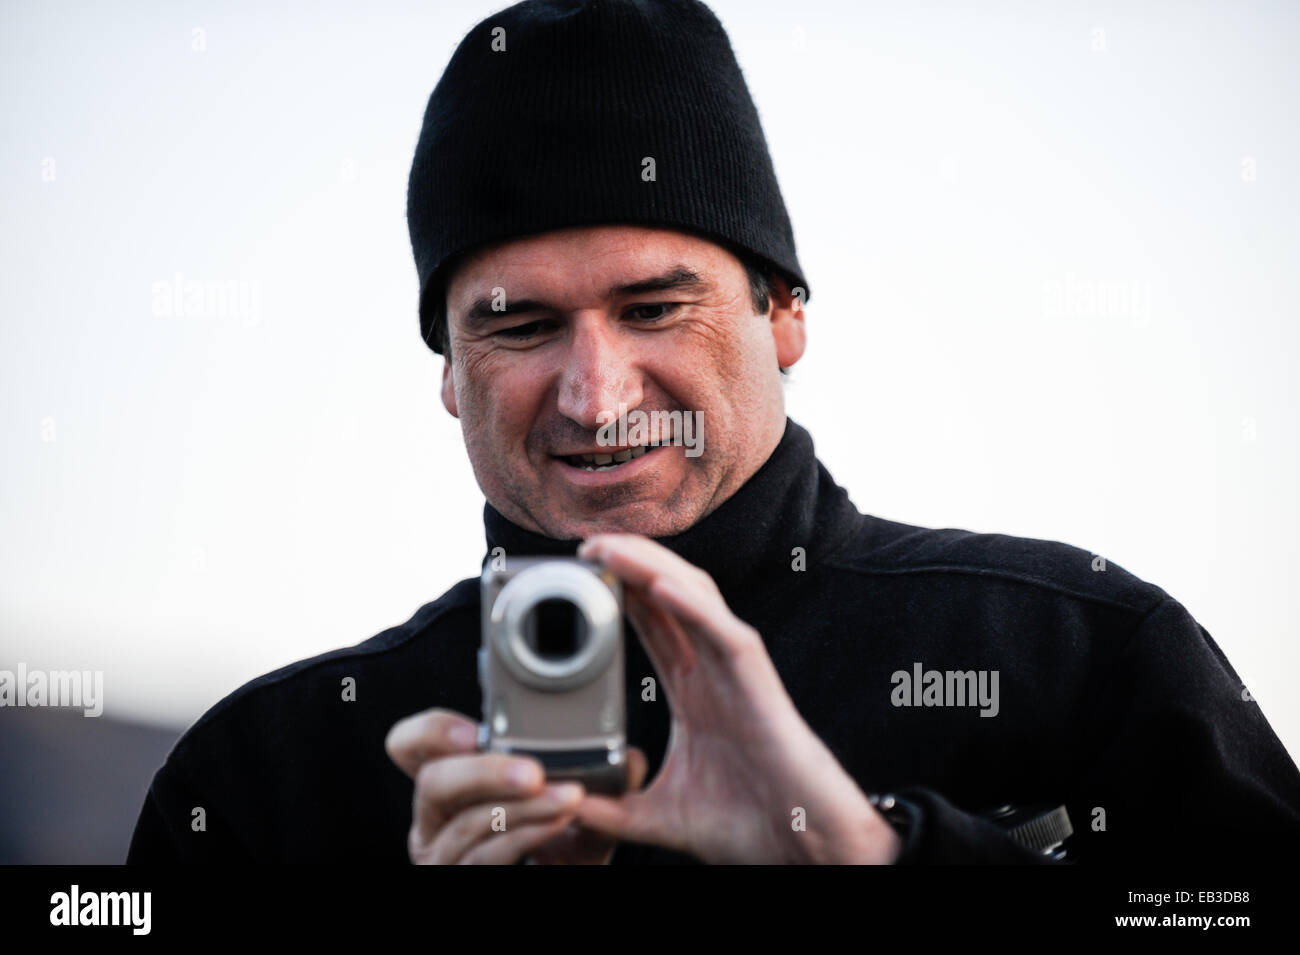 Portrait of a man taking a photo - Stock Image